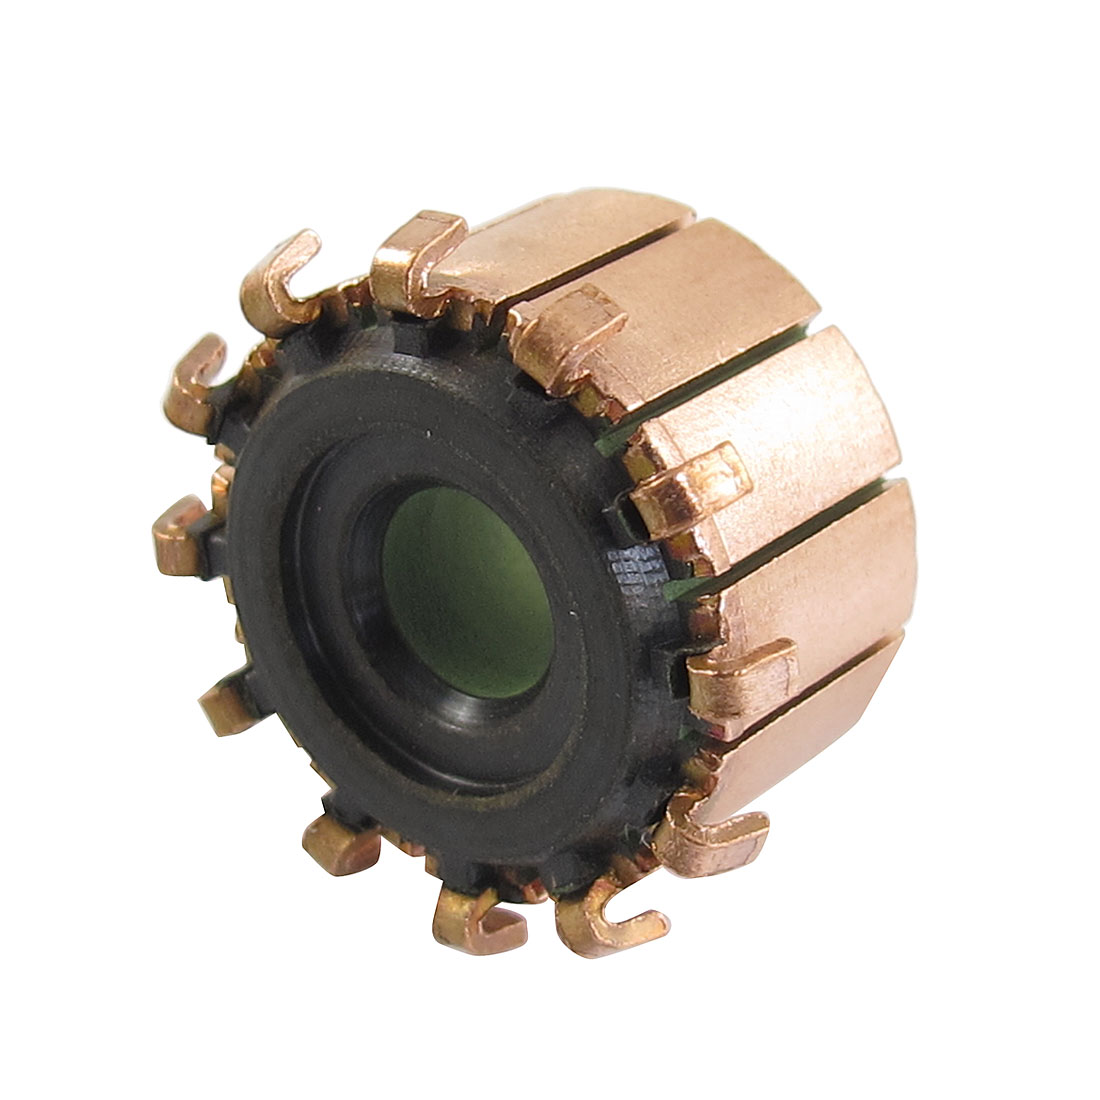 6.35mm x 18.9mm x 11.7mm 12P Copper Bars Alternator Electric Motor Commutator